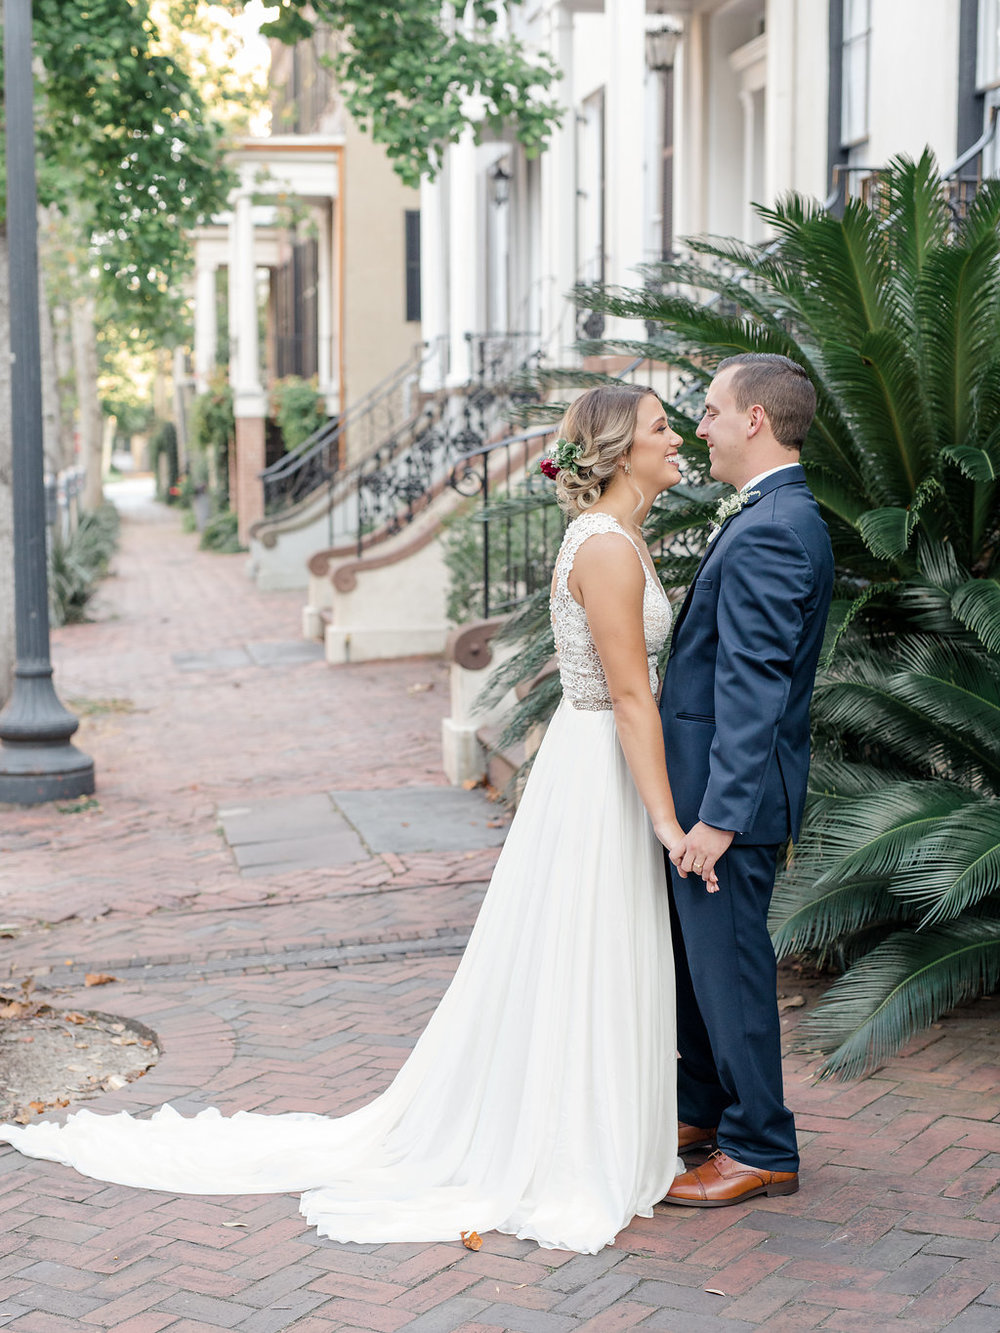 ivory-and-beau-bridal-boutique-savannah-wedding-dress-savannah-wedding-gown-savannah-bridal-boutique-savannah-wedding-planner-savannah-florist-13.jpg